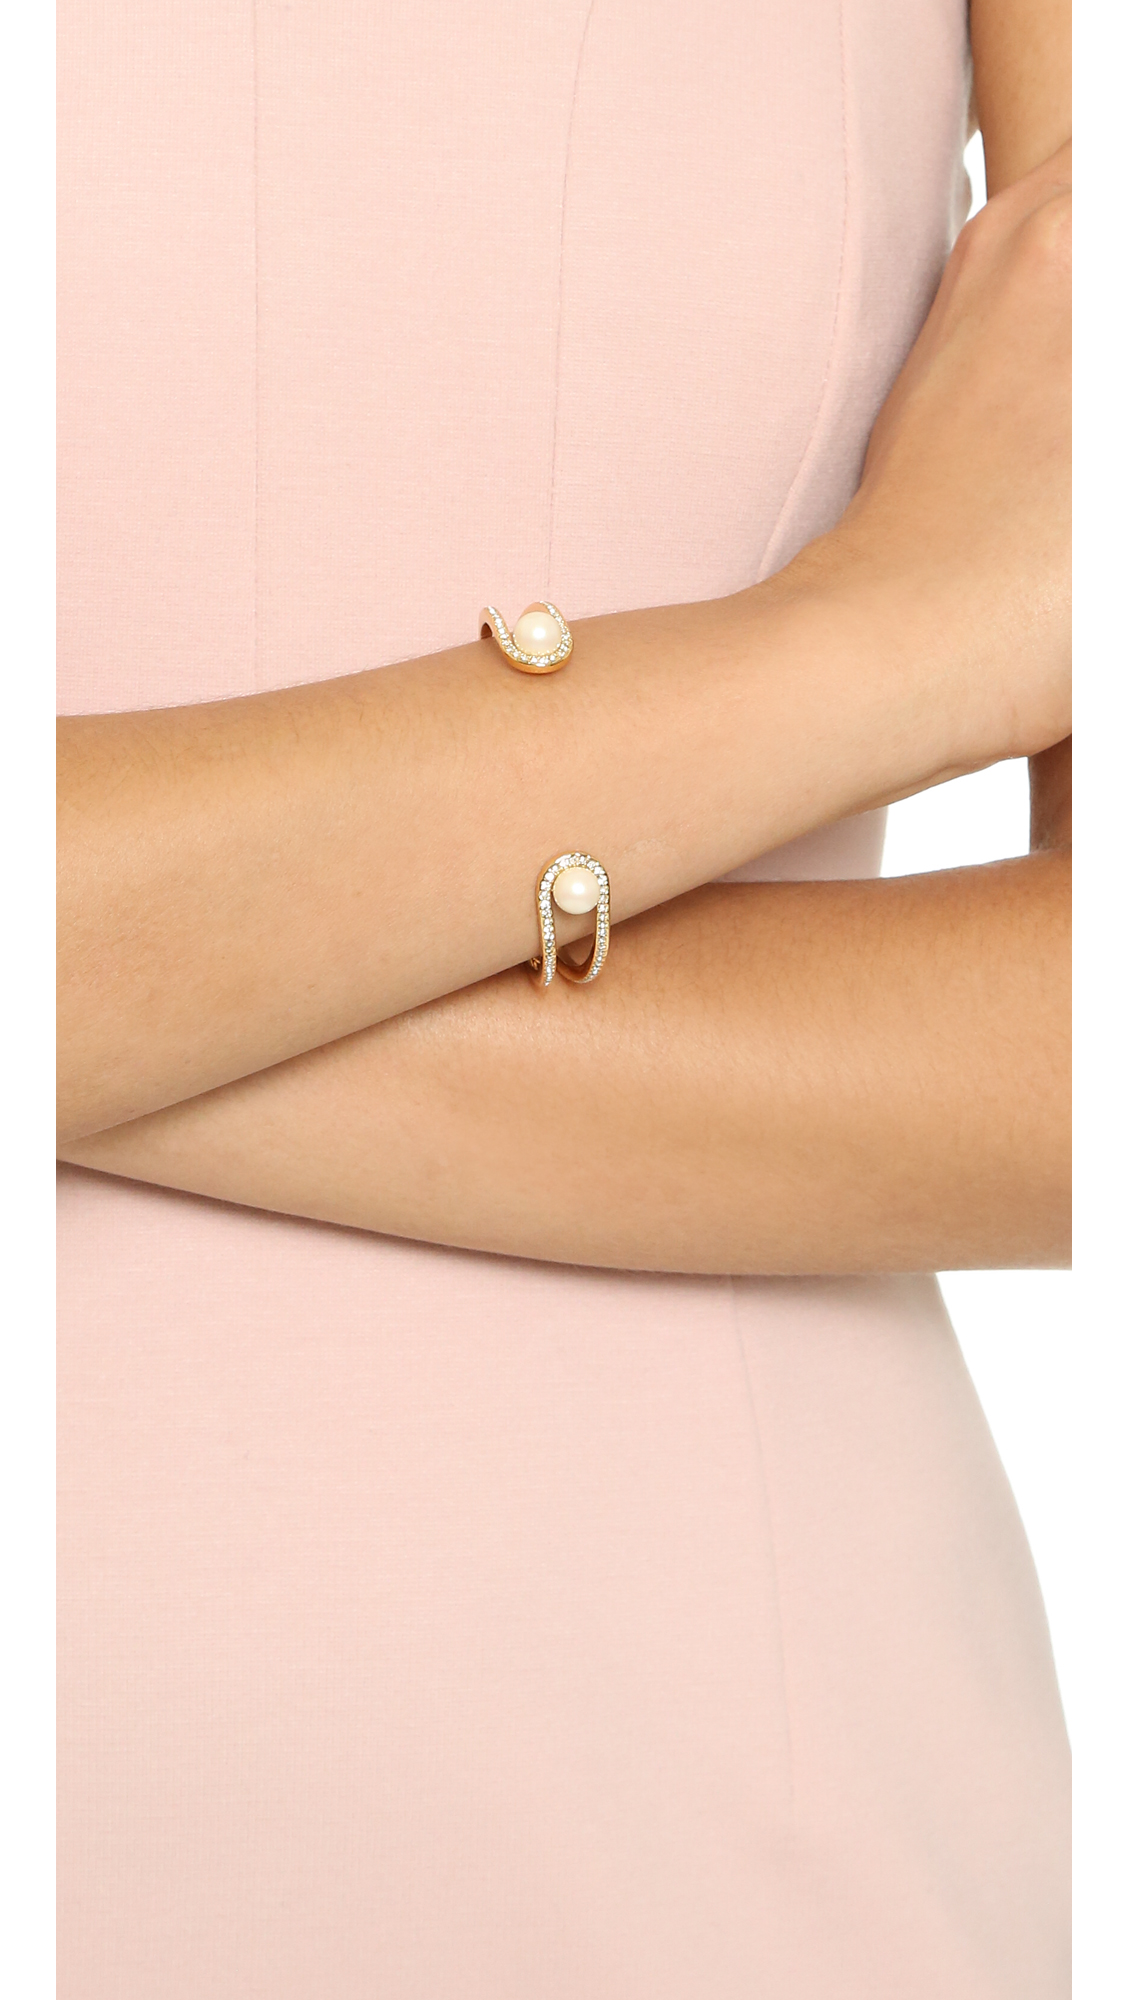 Kate Spade New York Purely Pearly Cuff Bracelet | SHOPBOP SAVE UP TO ...